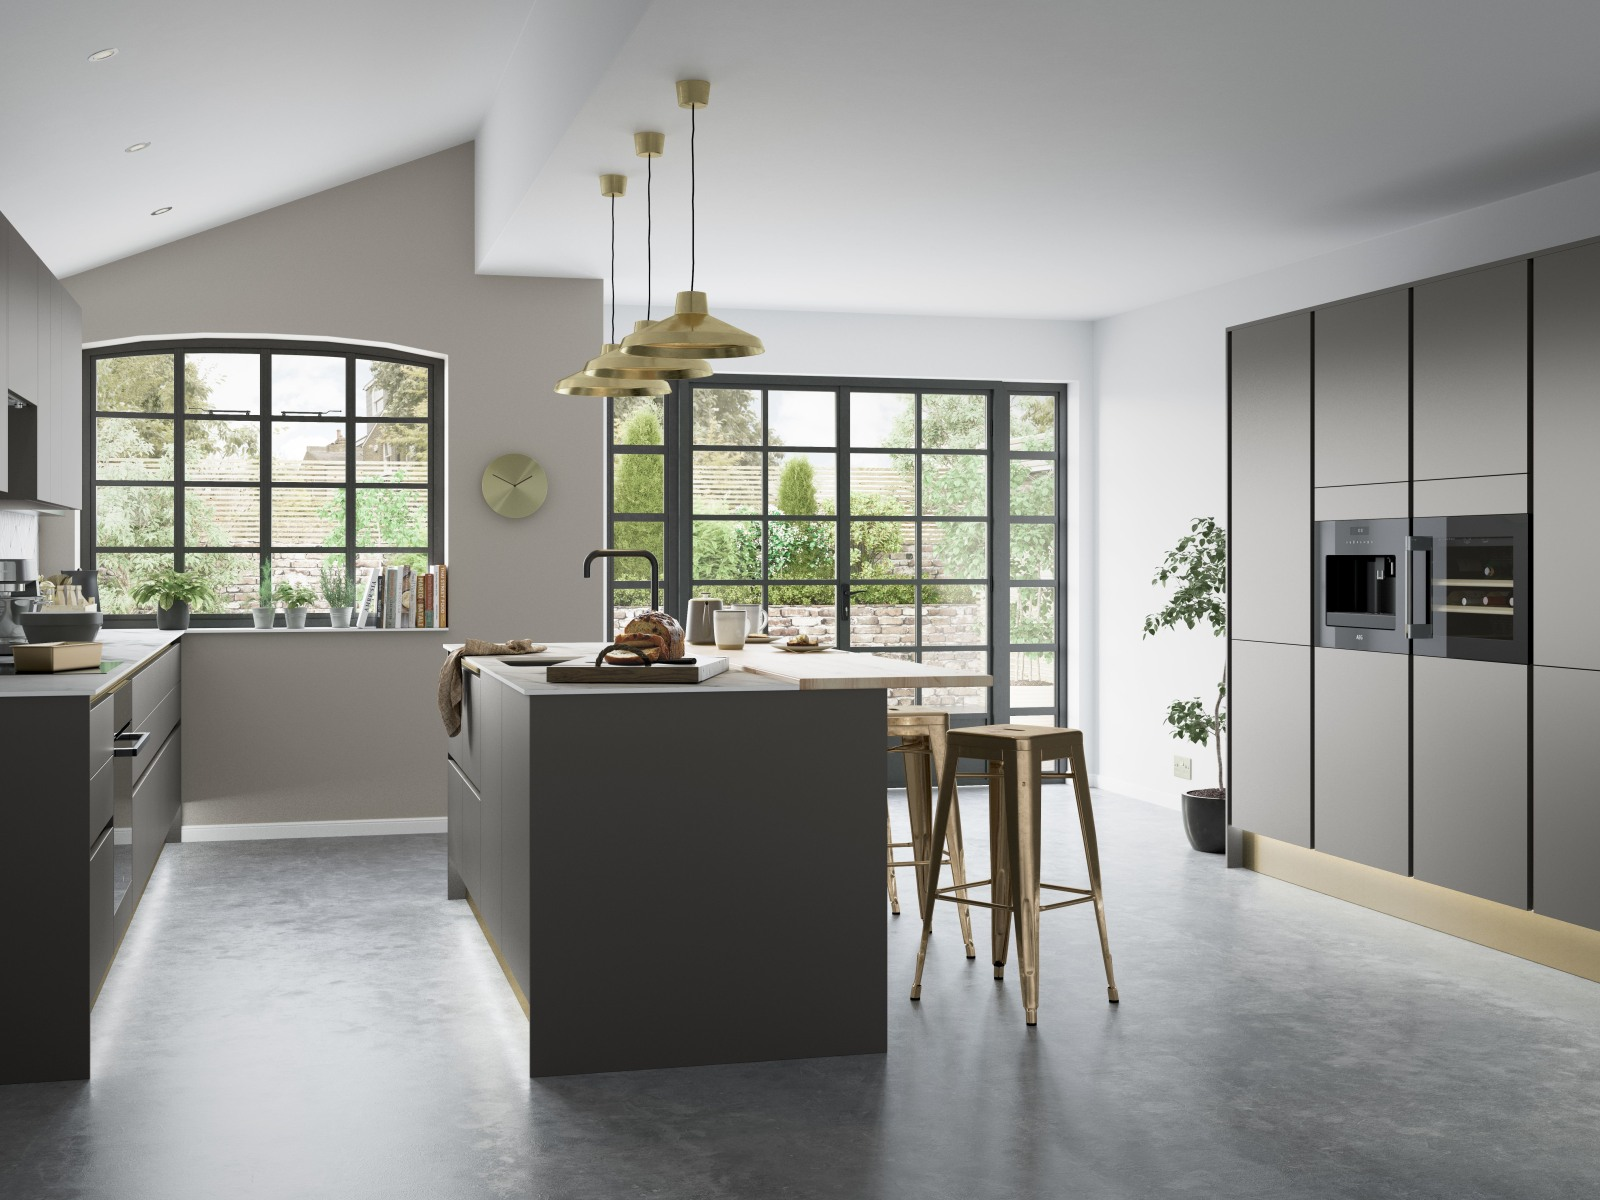 Integra Nova by Magnet. Matt finished handless option with trim brushed in aluminium for a high end feel.